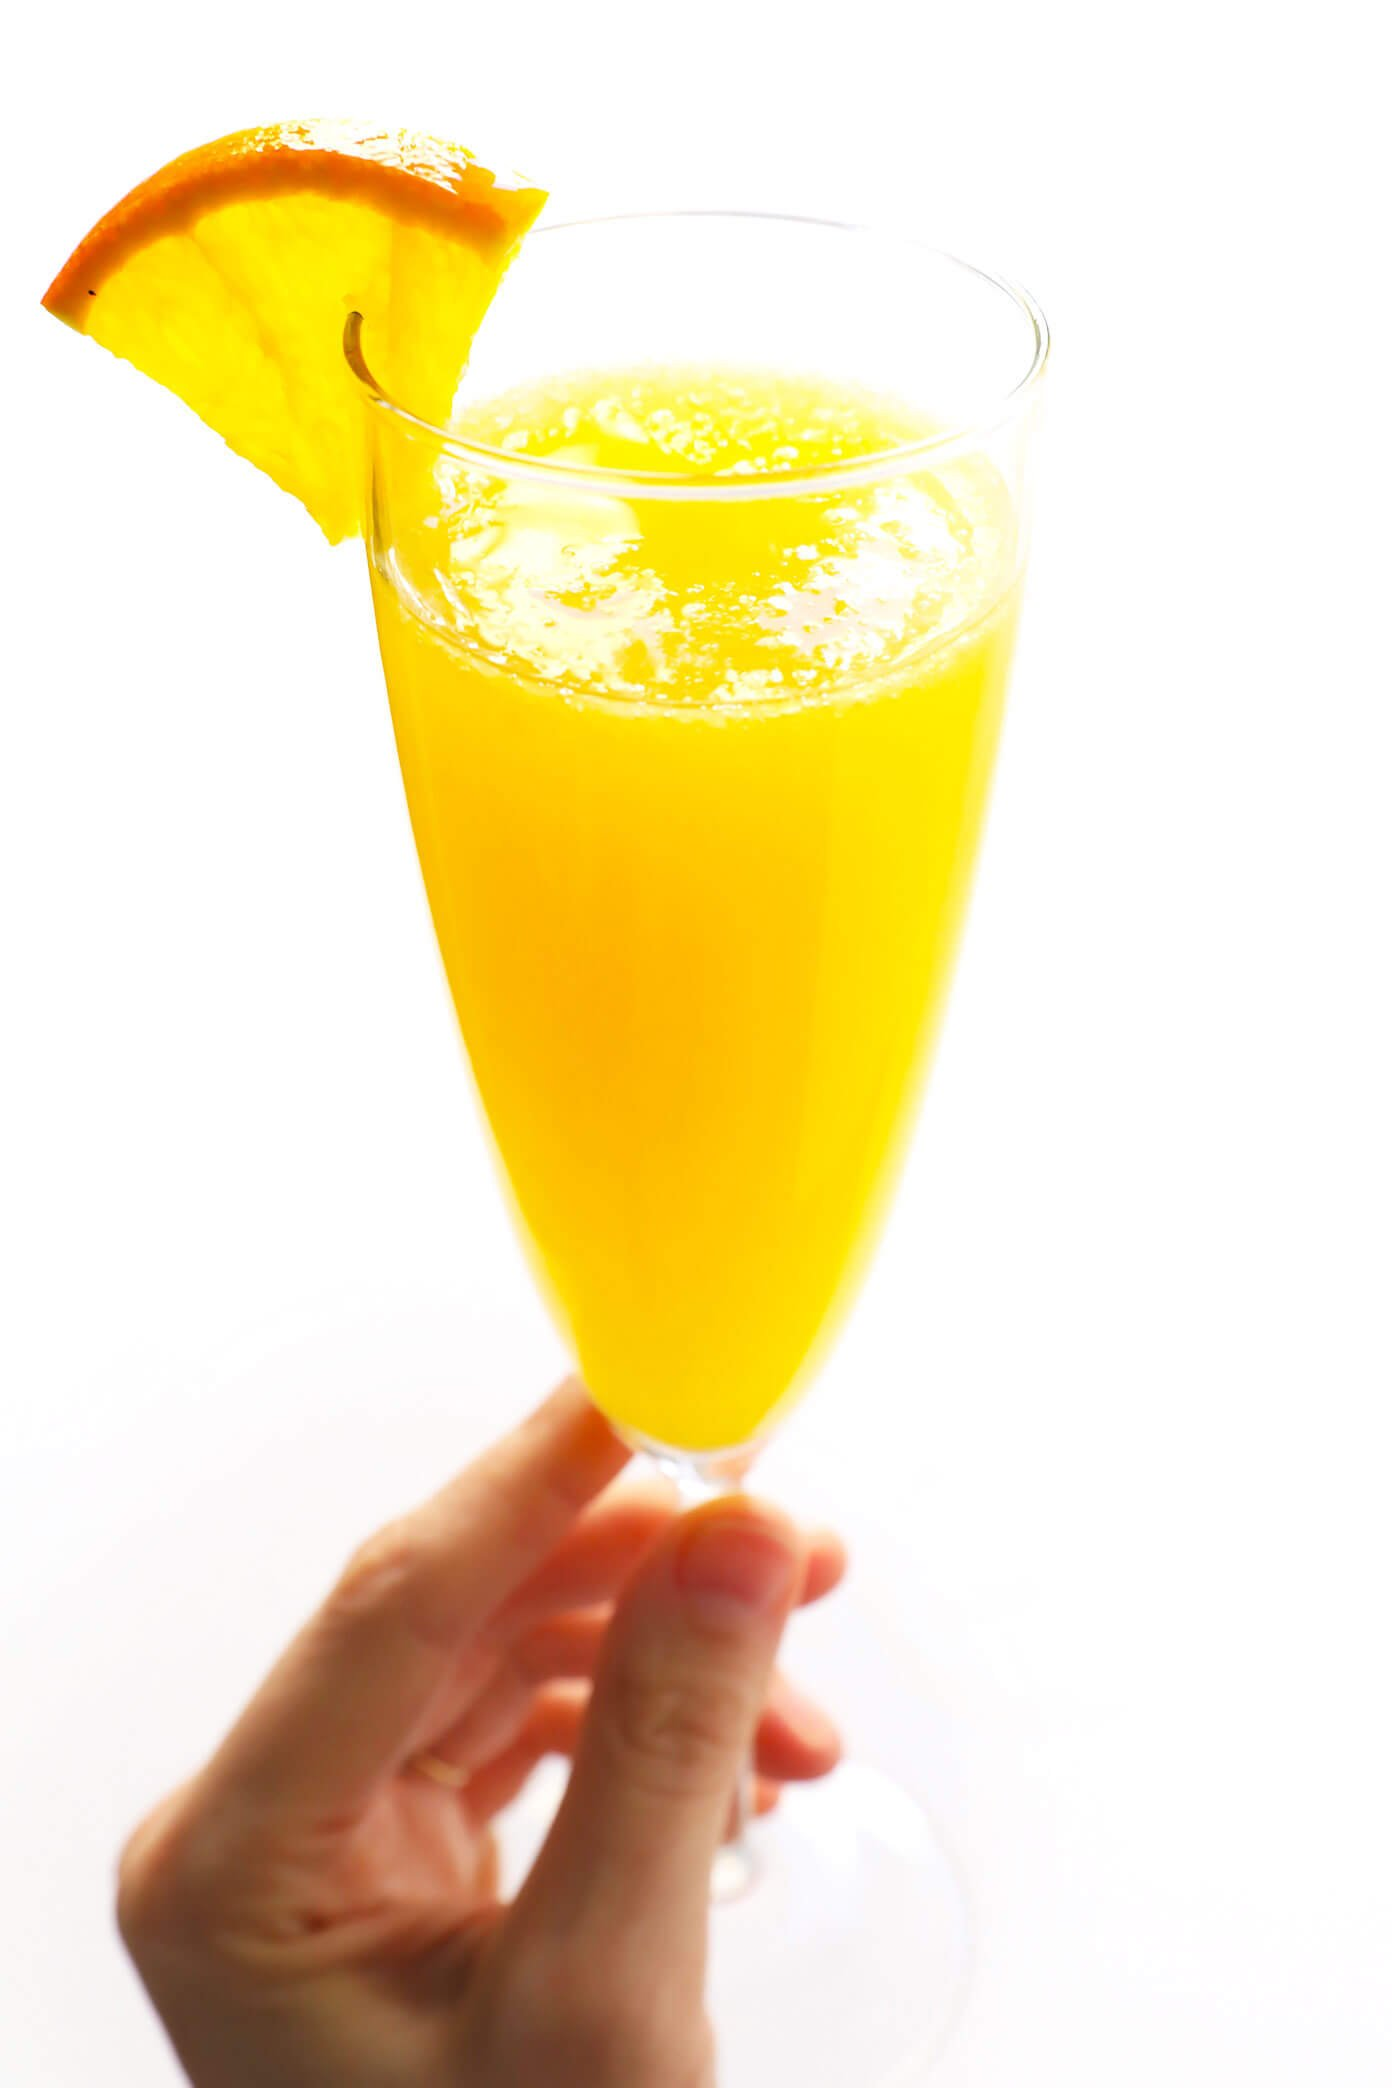 The recipe for classic mimosa